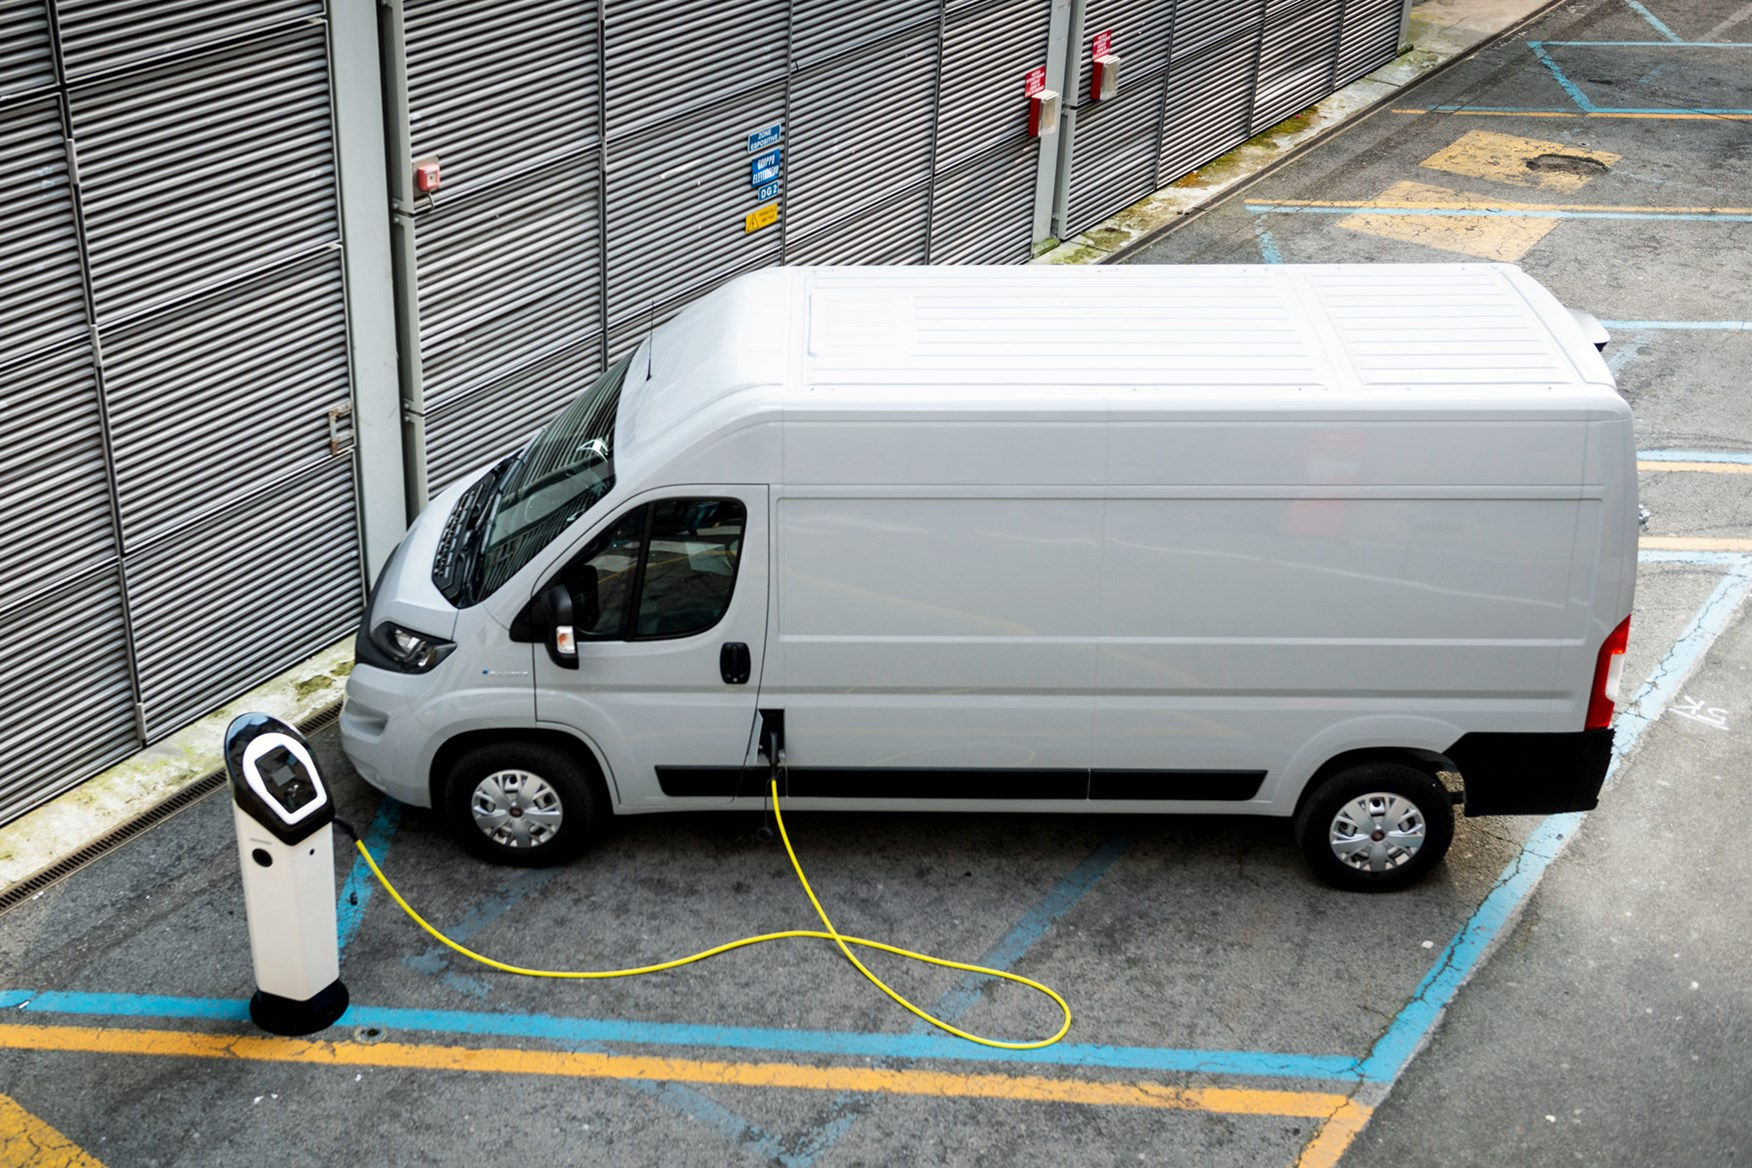 Fiat E-Ducato review - plugged in to charge, high view, white